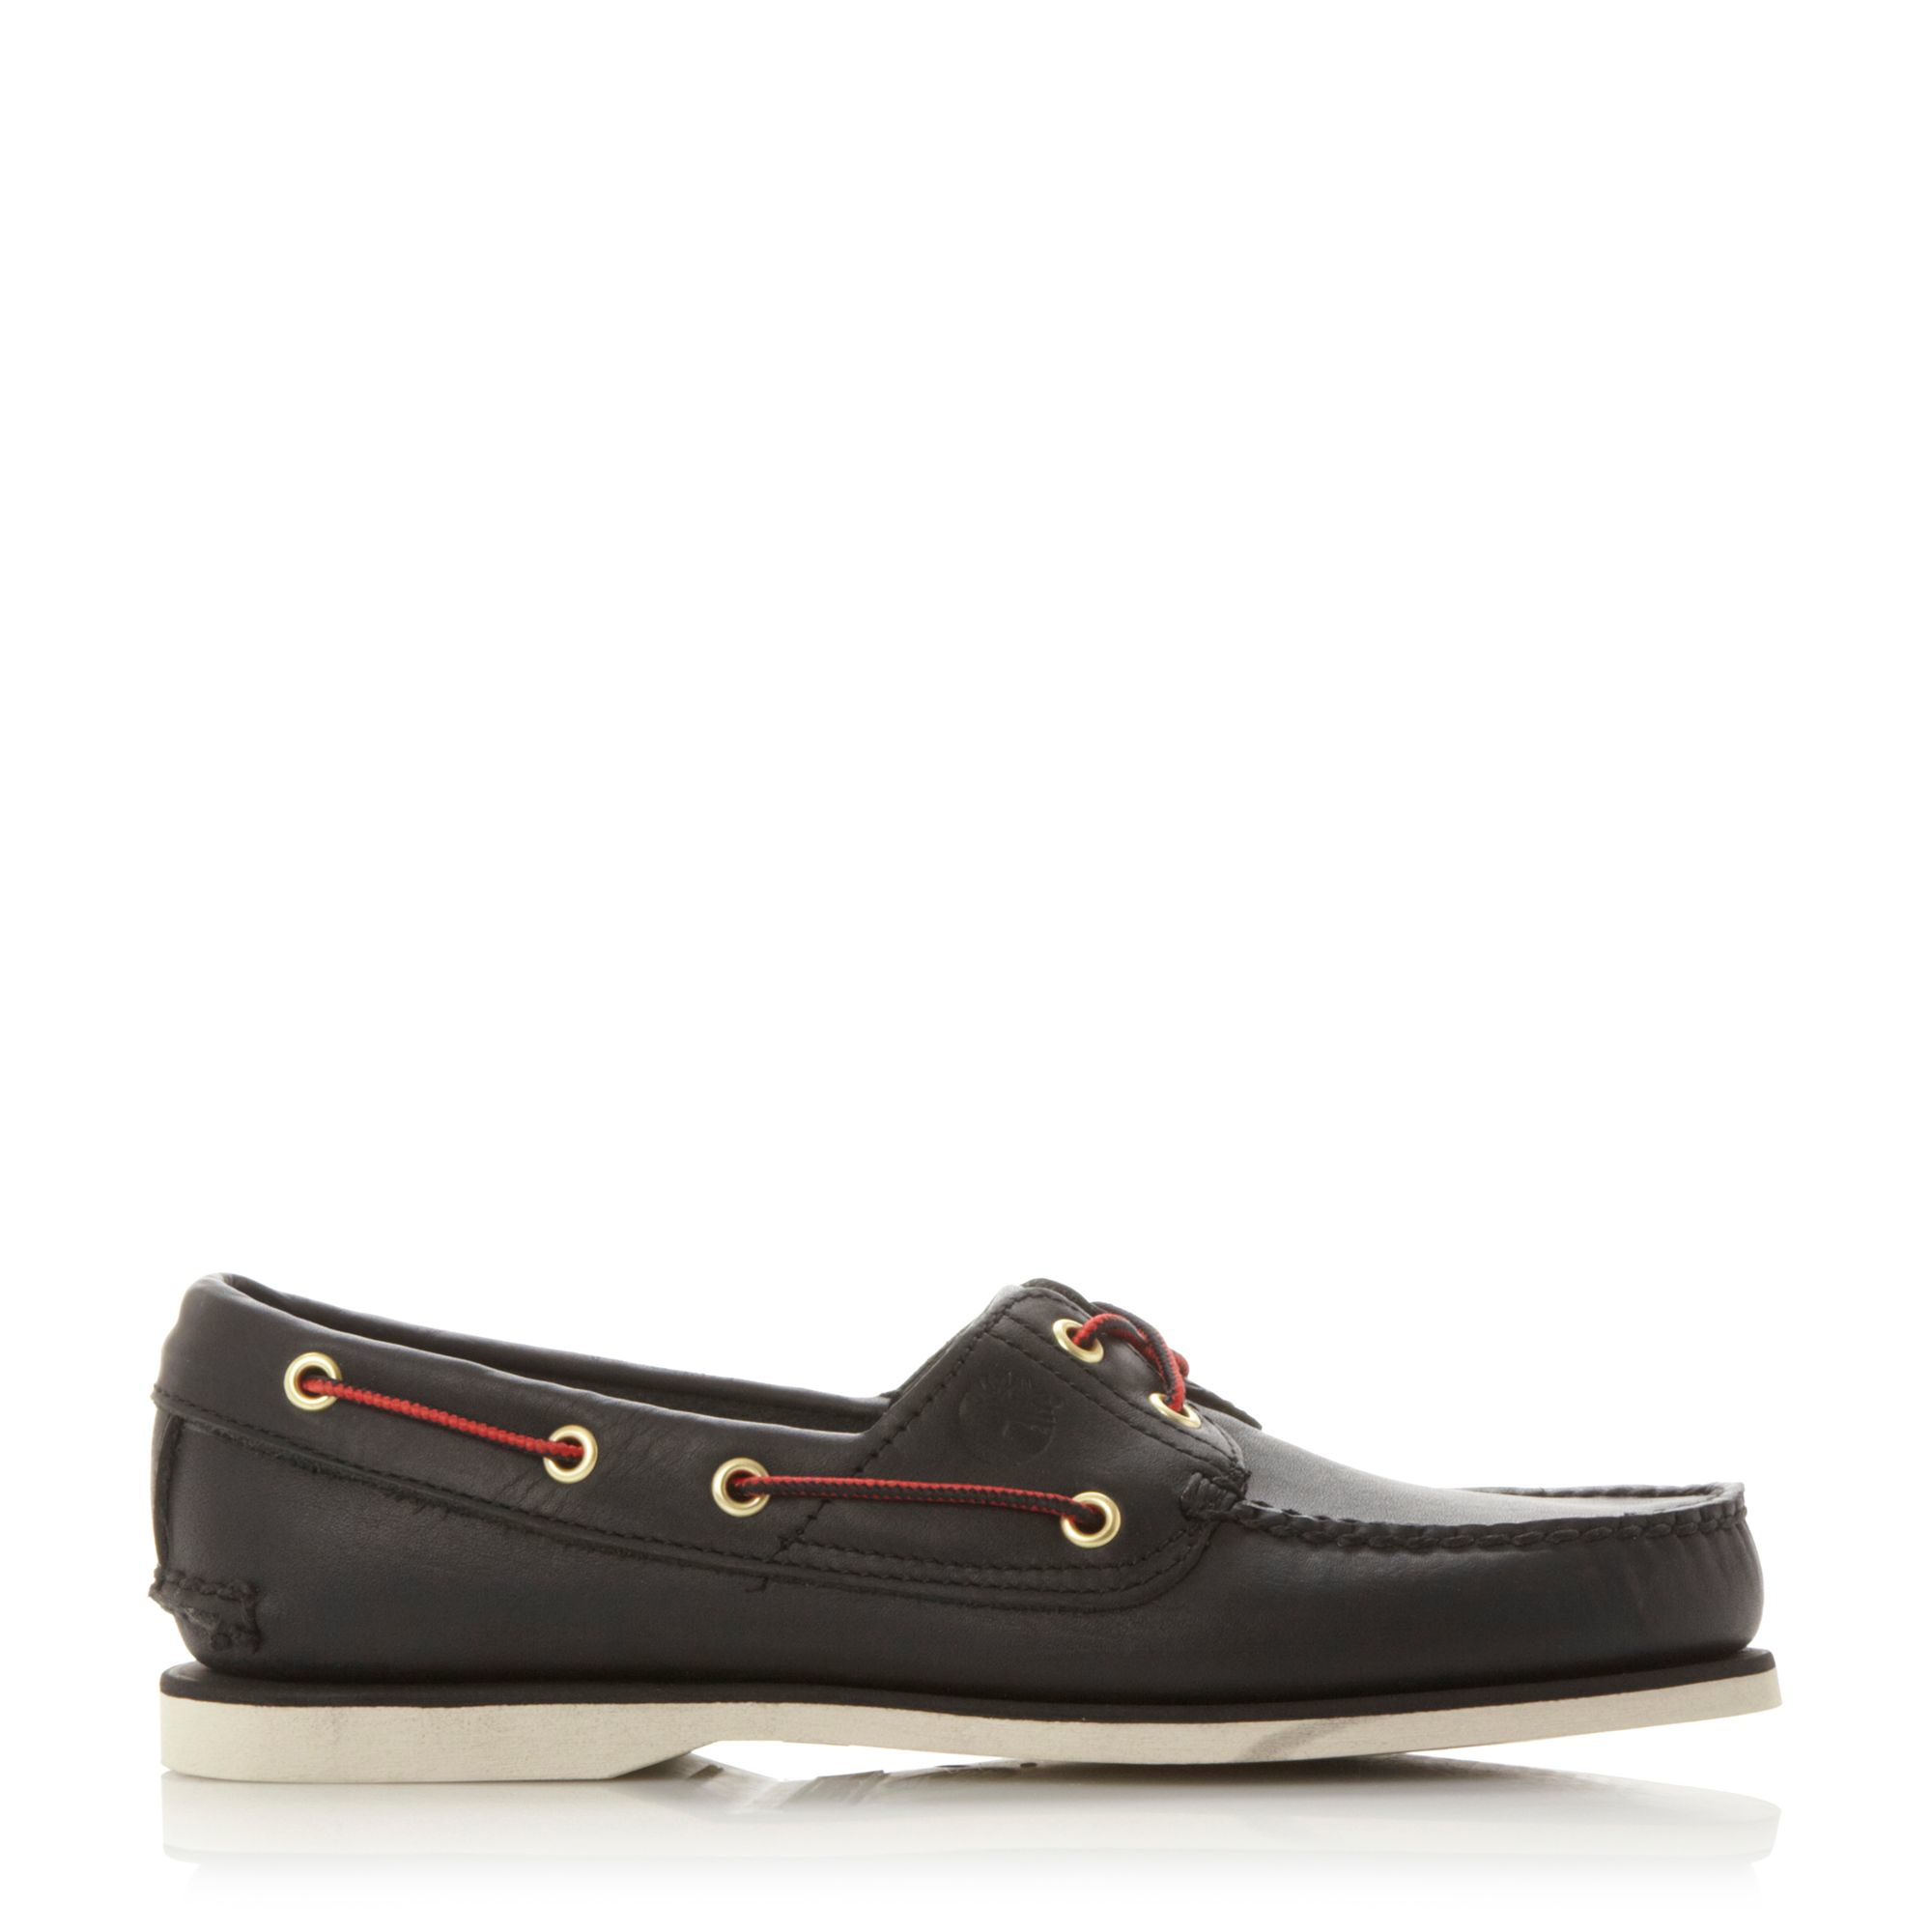 timberland 1005r classic boat shoes in black for